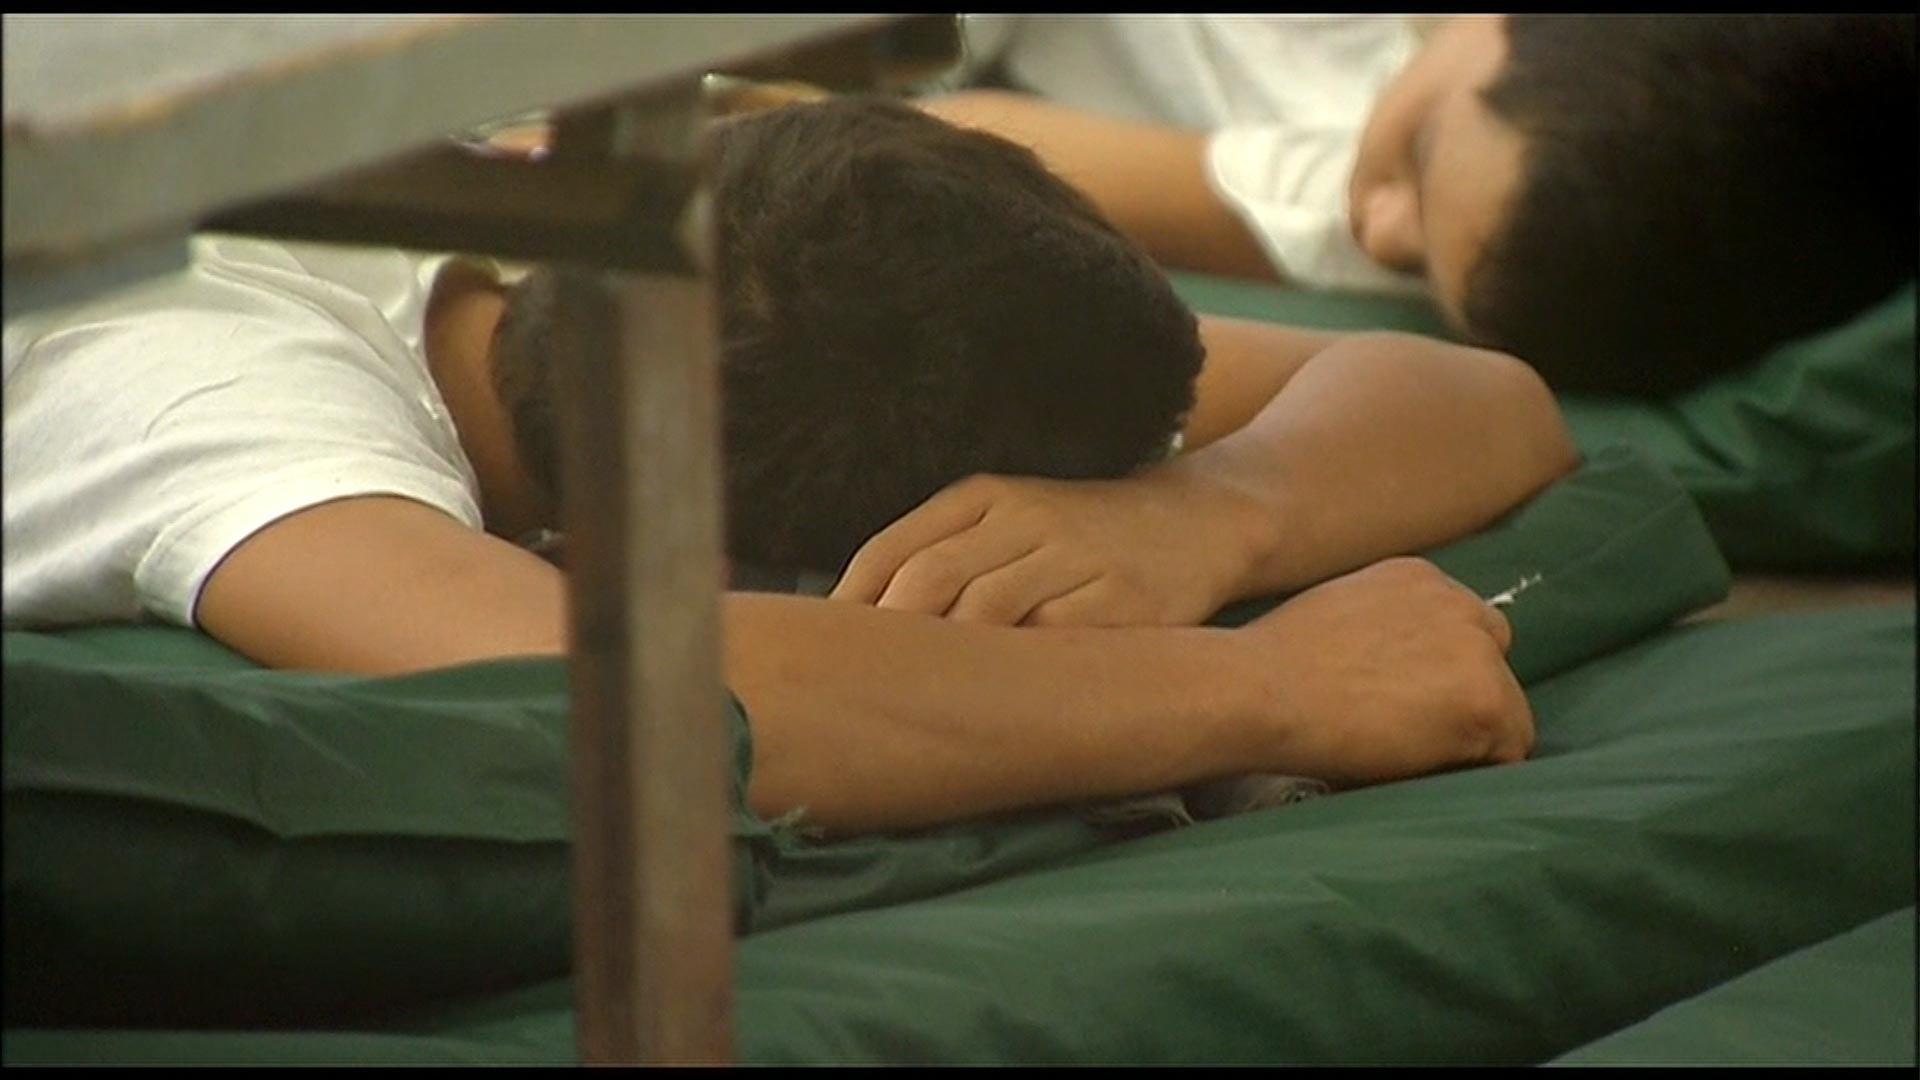 Immigrant children rest at a detention facility in Nogales, Arizona in 2014.